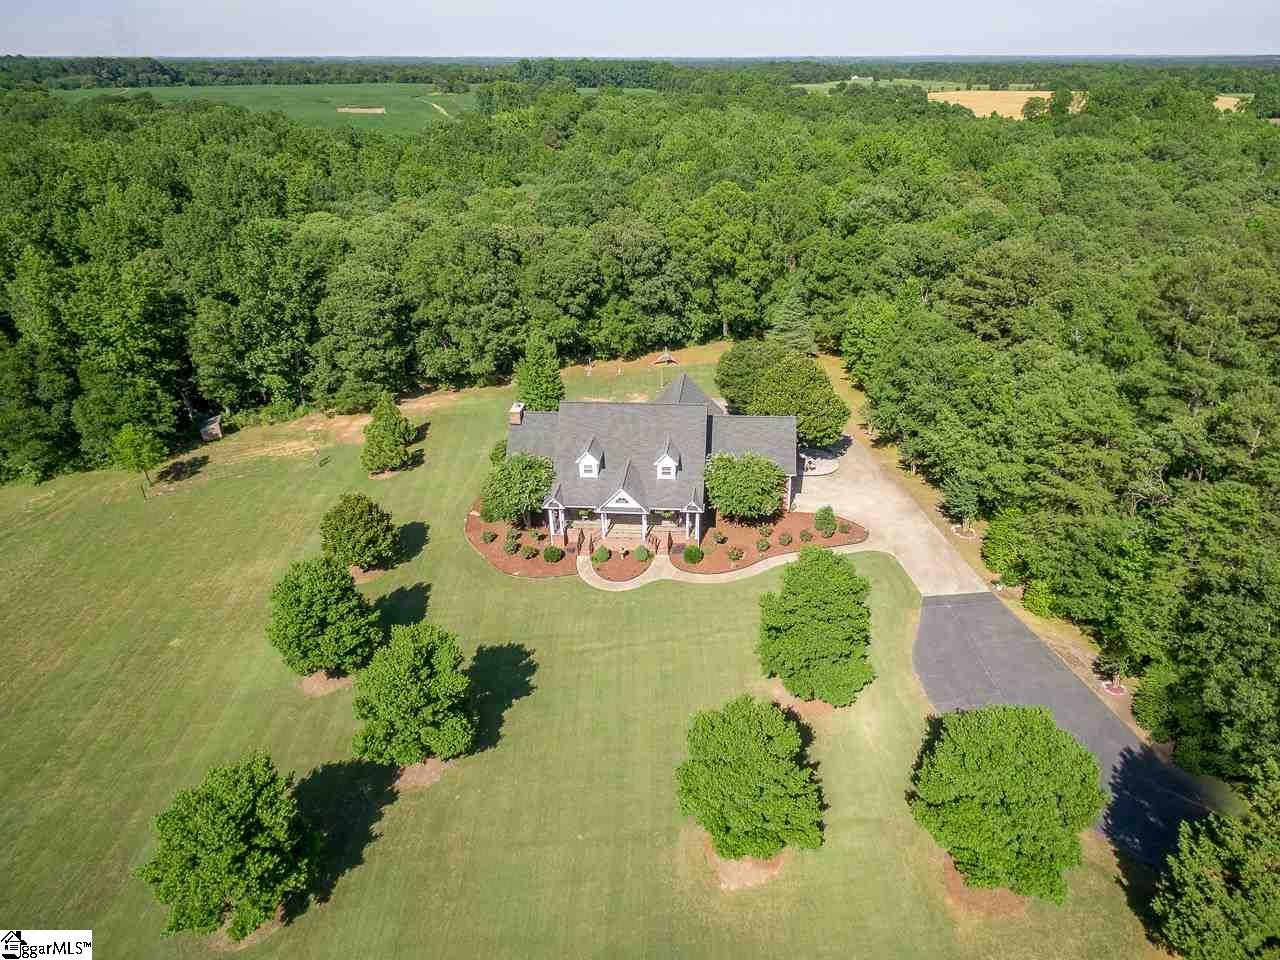 3065 S HWY 101 Highway Greenville and Spartanburg Home Listings - Joanna K Realty, Inc Real Estate